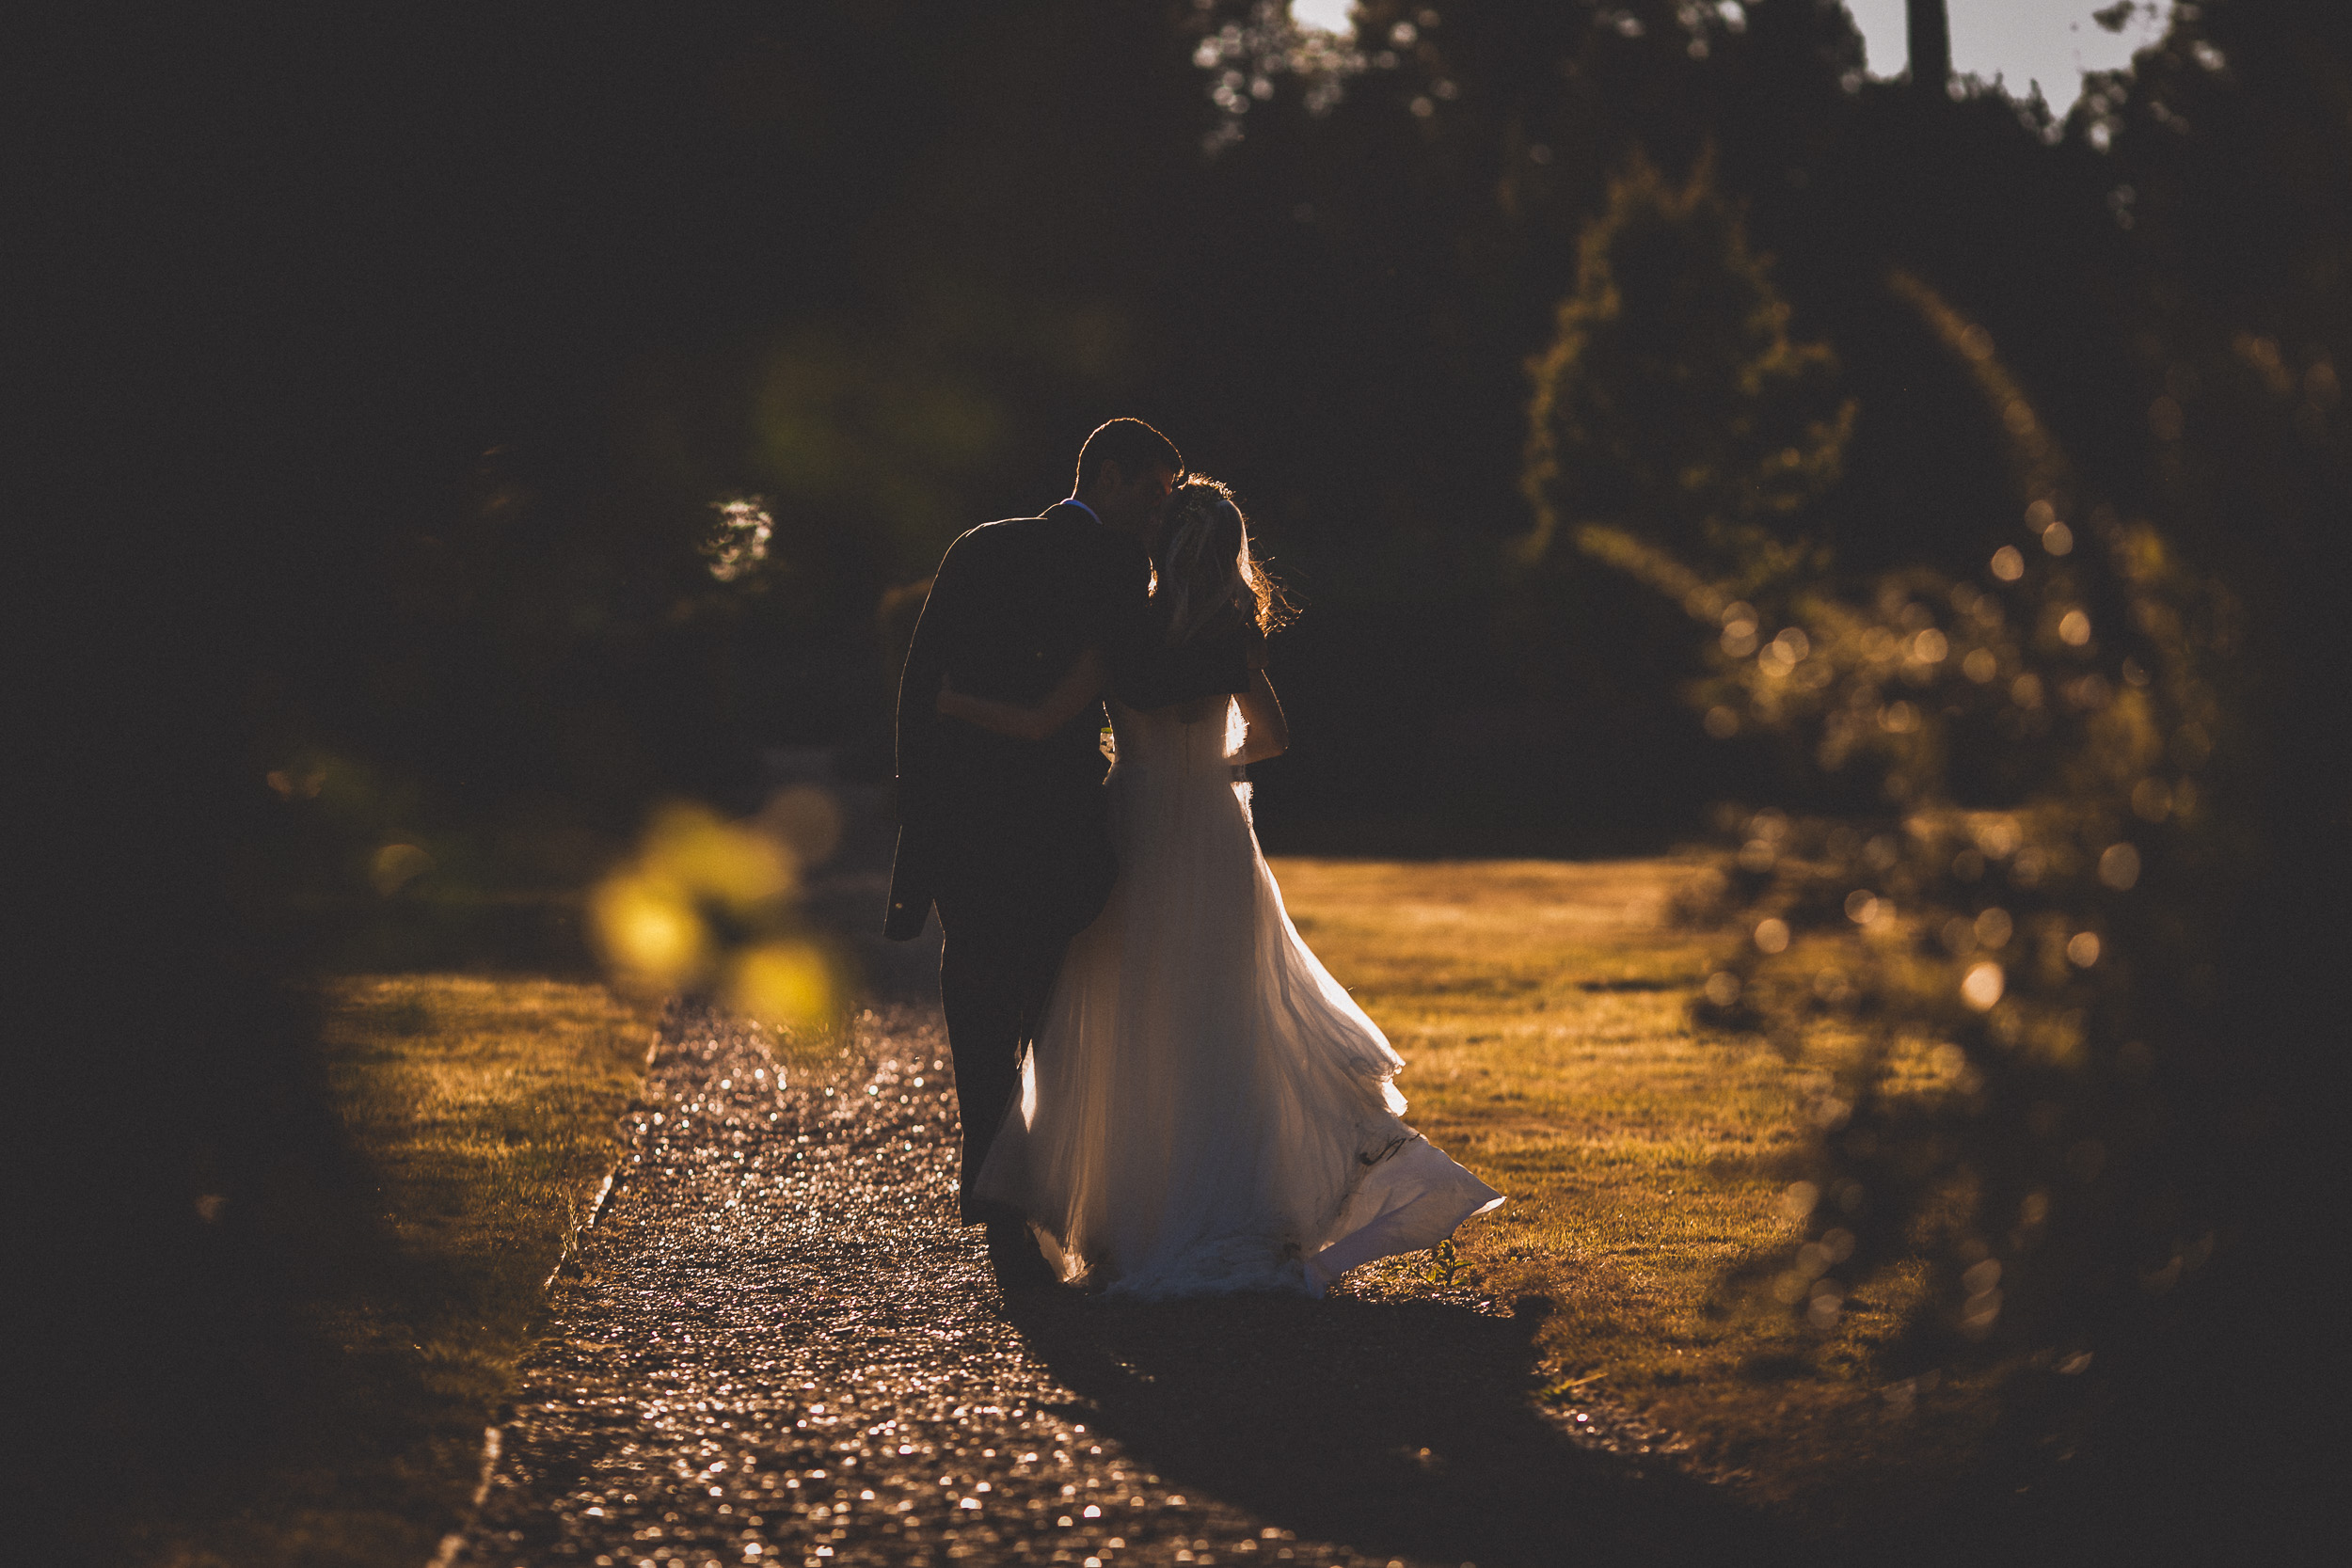 Wiston House Wedding Photography | Helouise & Alex Wiston house wedding photographer 032